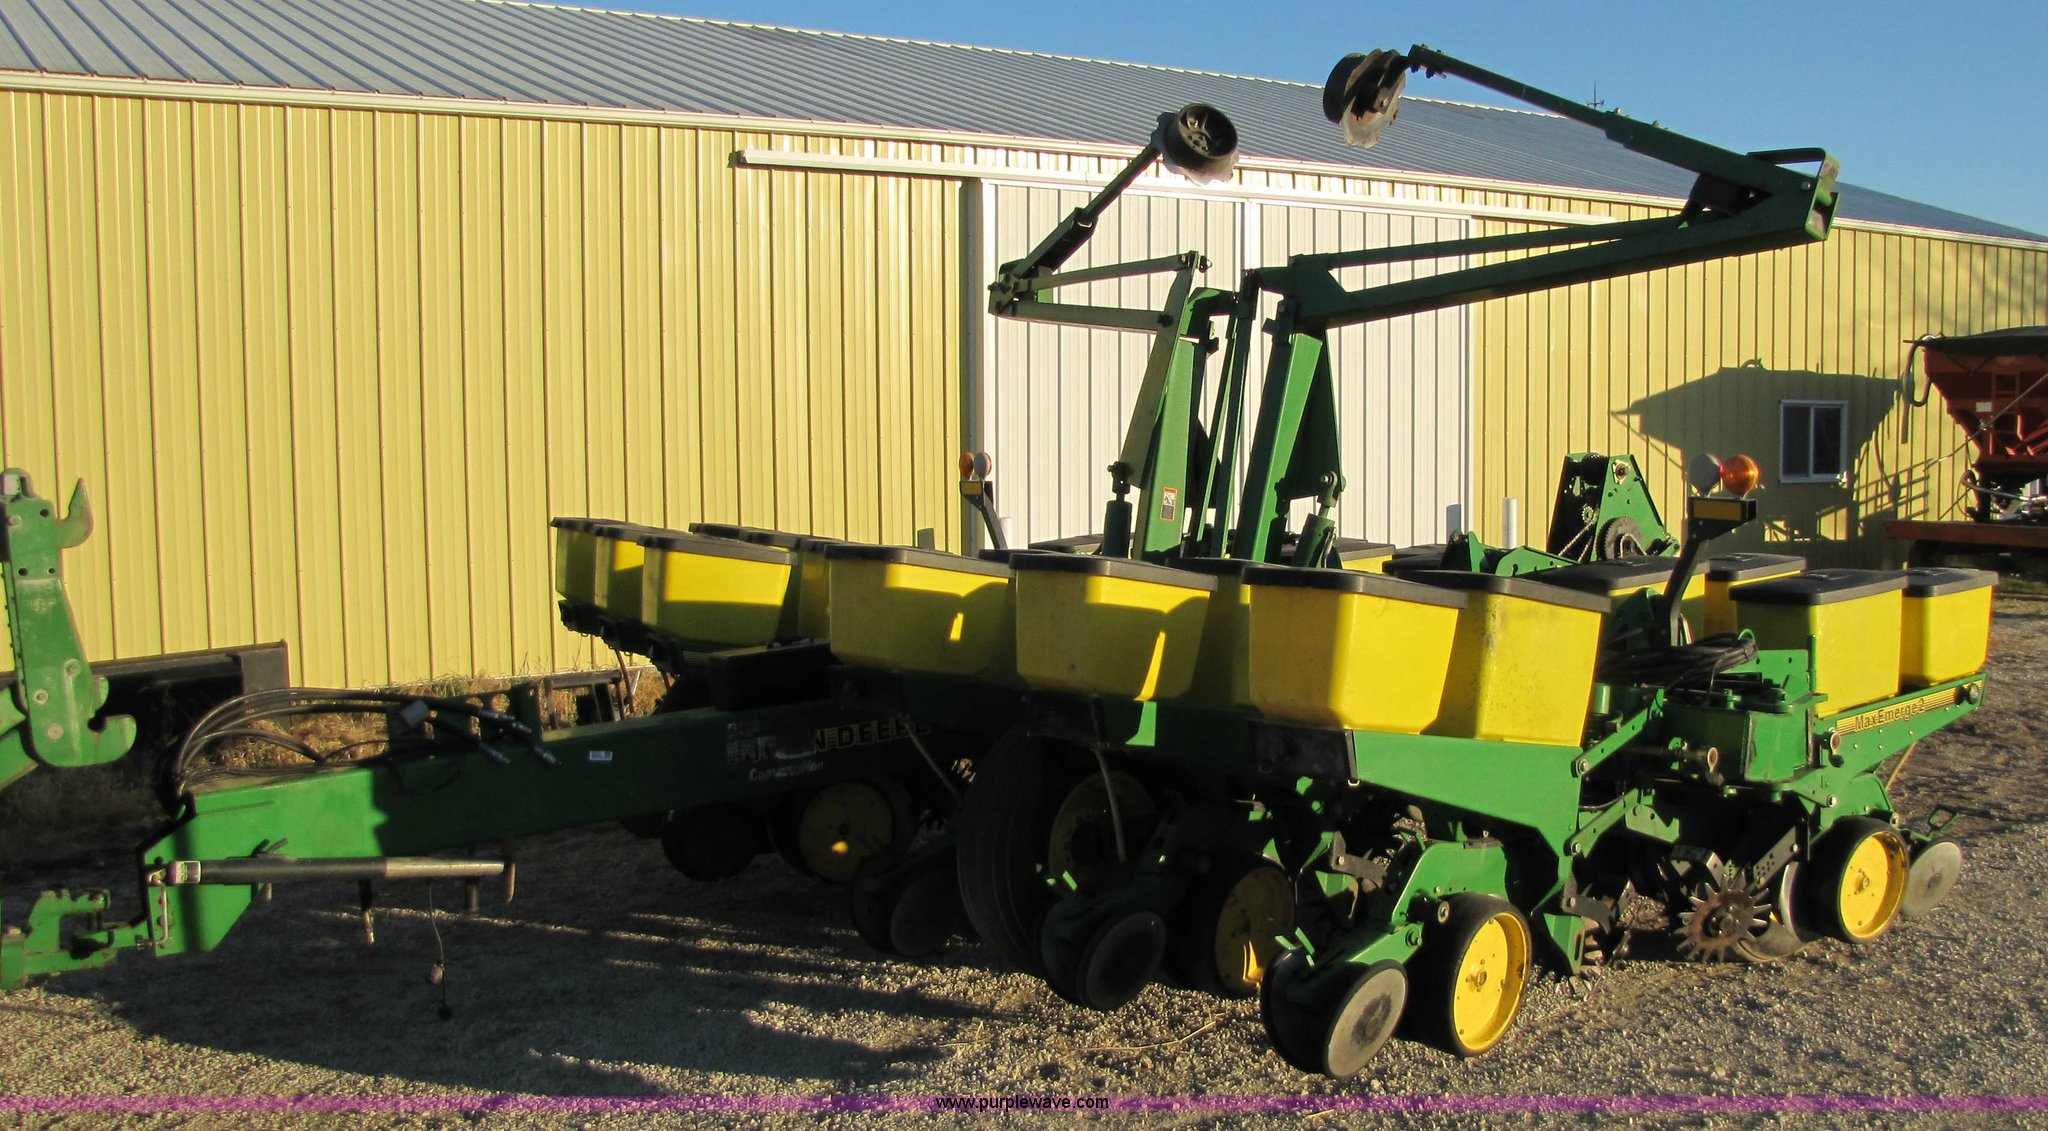 John Deere 1760 Conservation Max Emerge 2 Planter Item 531